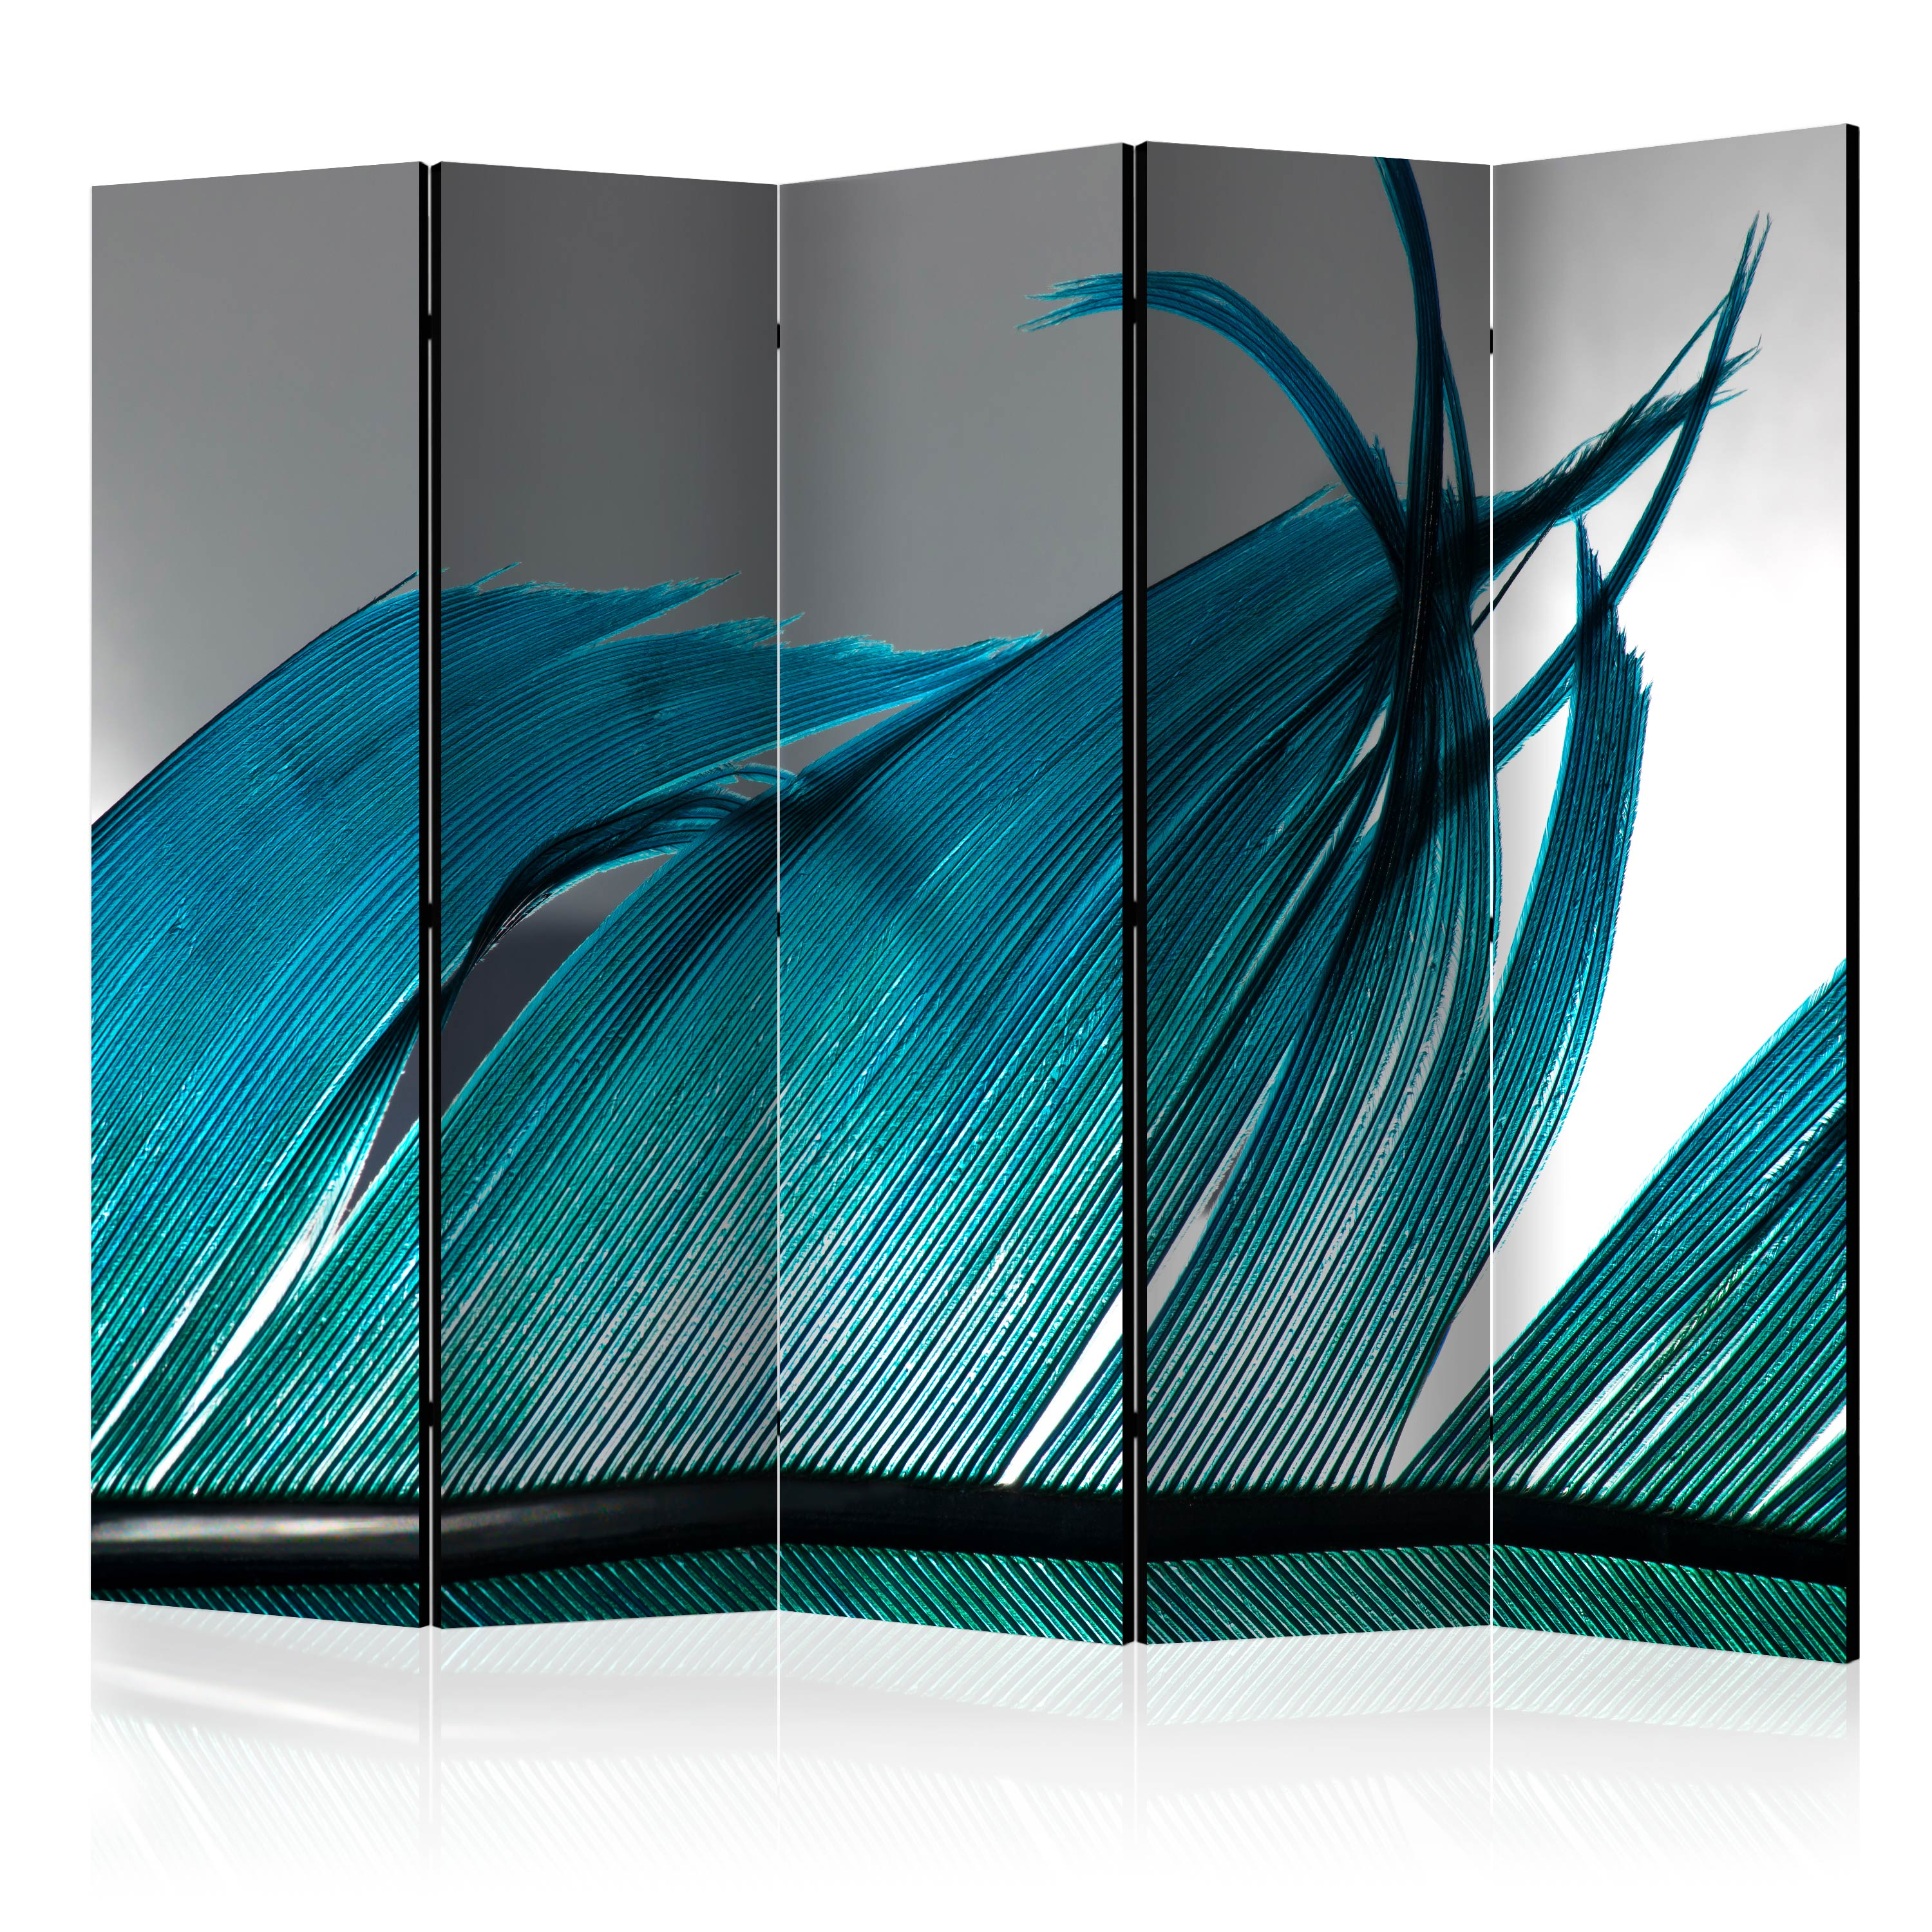 Paravento - Turquoise Feather II [Room Dividers] 225X172 cm